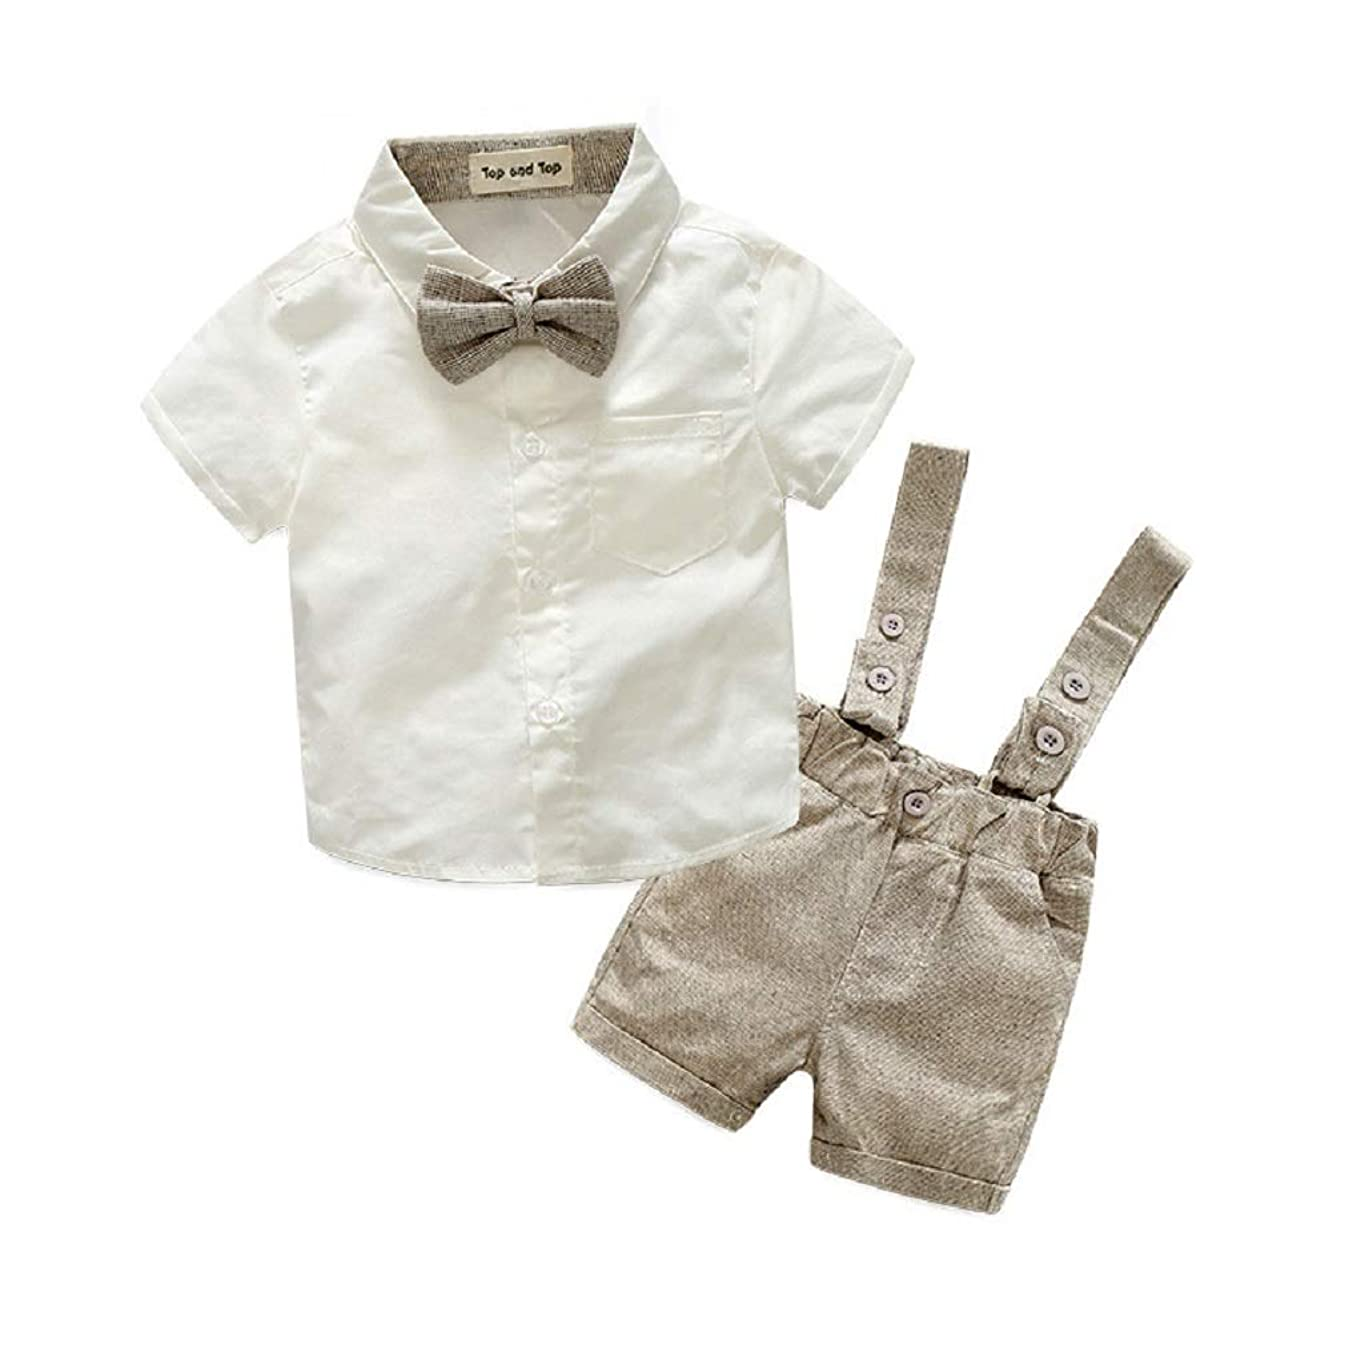 HZYBABY Toddler Boy Gentleman Outfits Suits Short Sleeve Bow Ties Shirts + Bid Pants